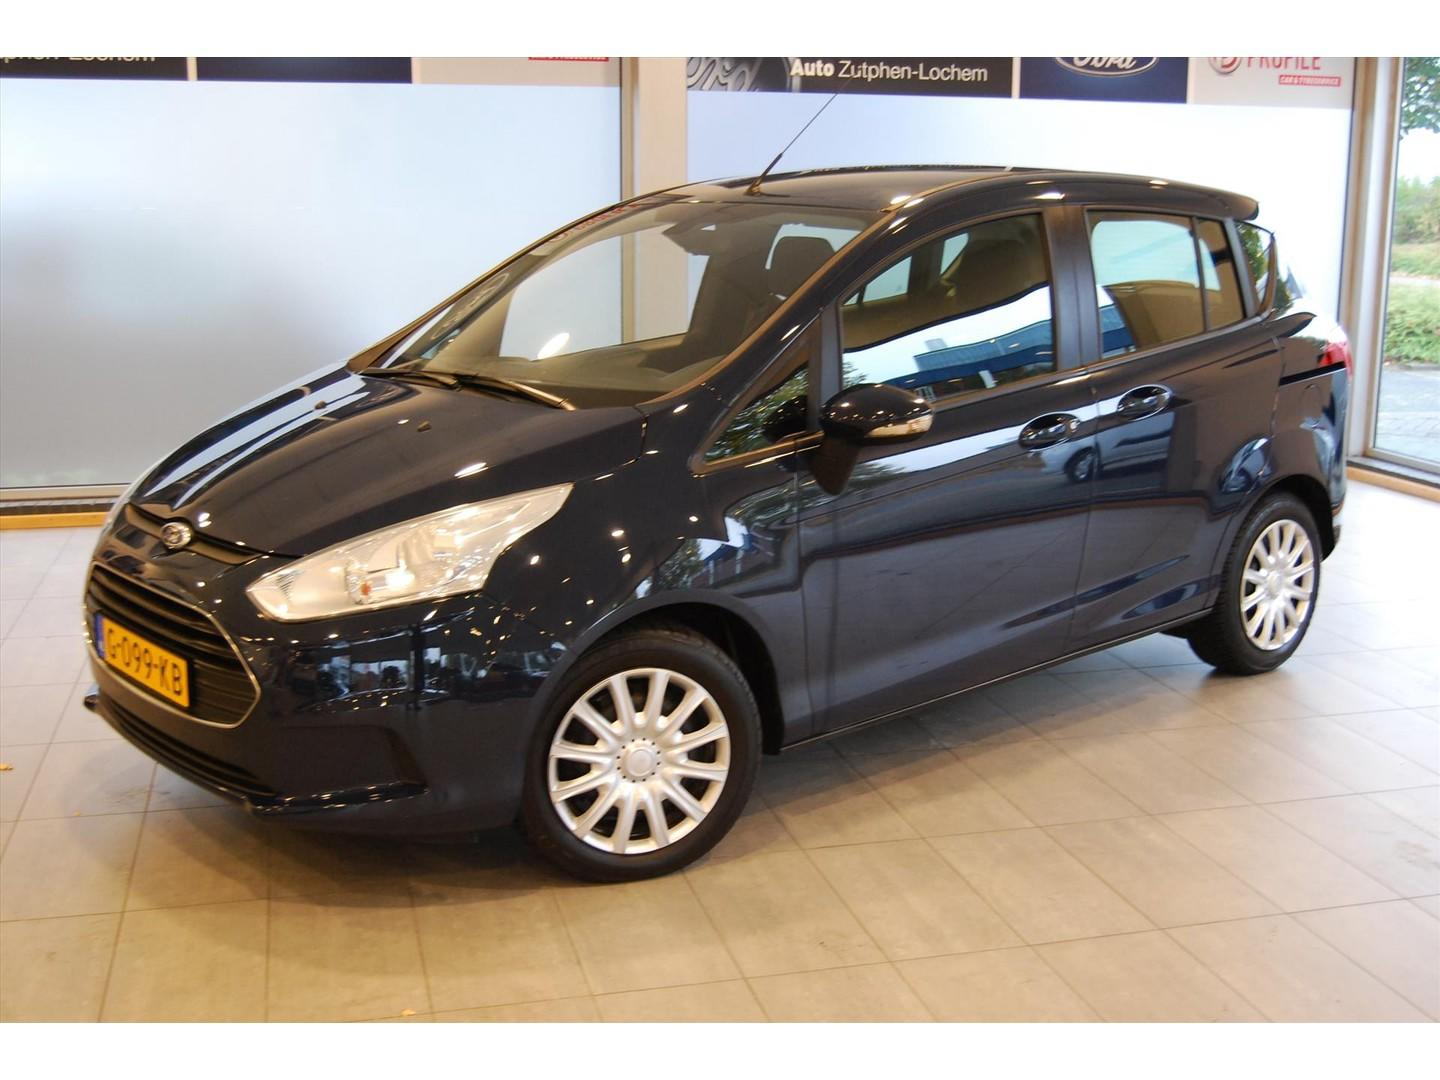 Ford B-max 1.0 ecoboost 100pk trekhaak, winterbanden, bluetooth